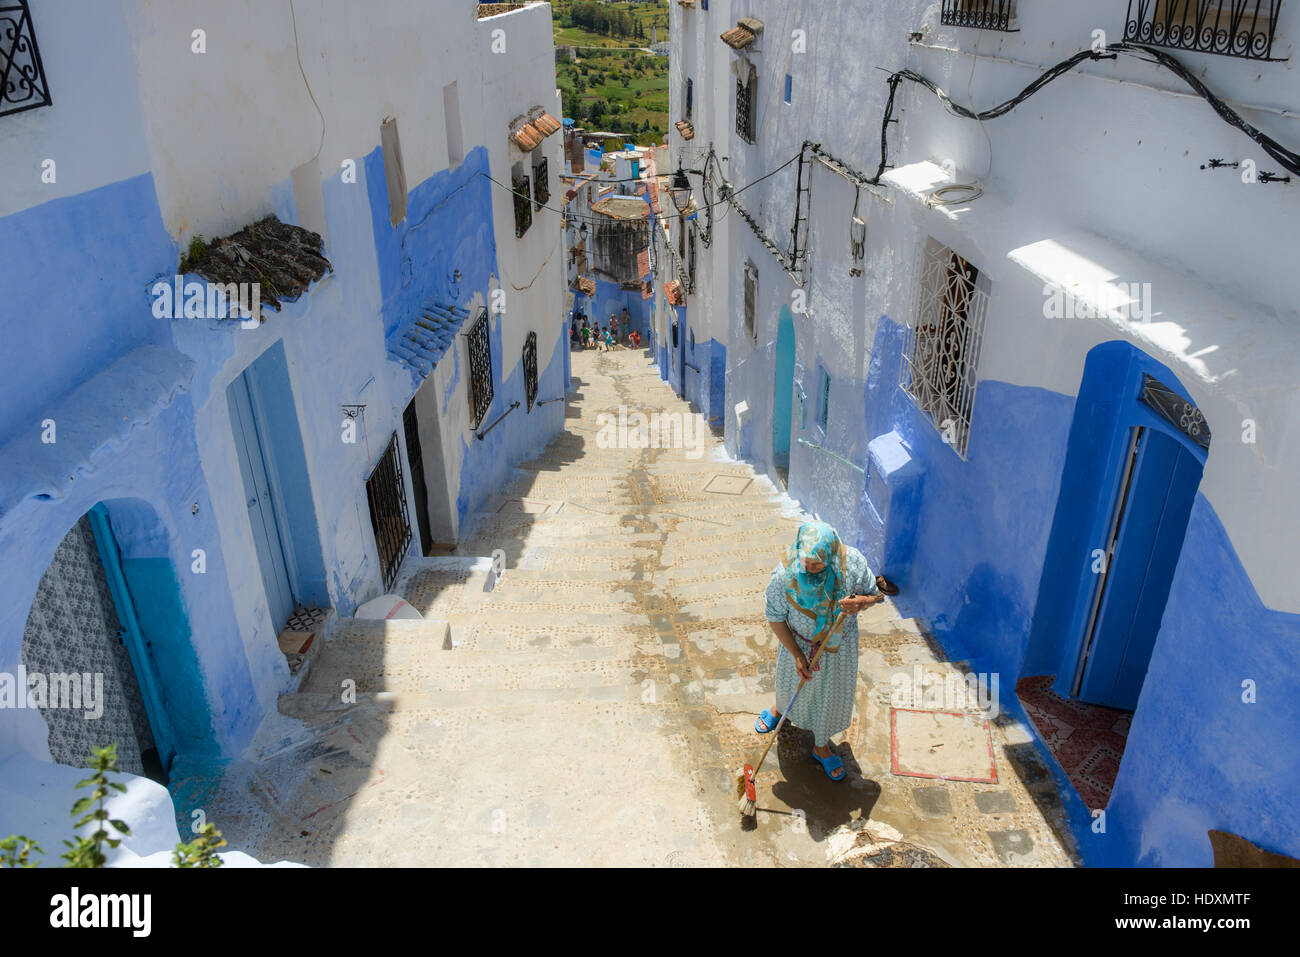 Streets and alleys of the Medina of Chefchaouen, Morocco - Stock Image